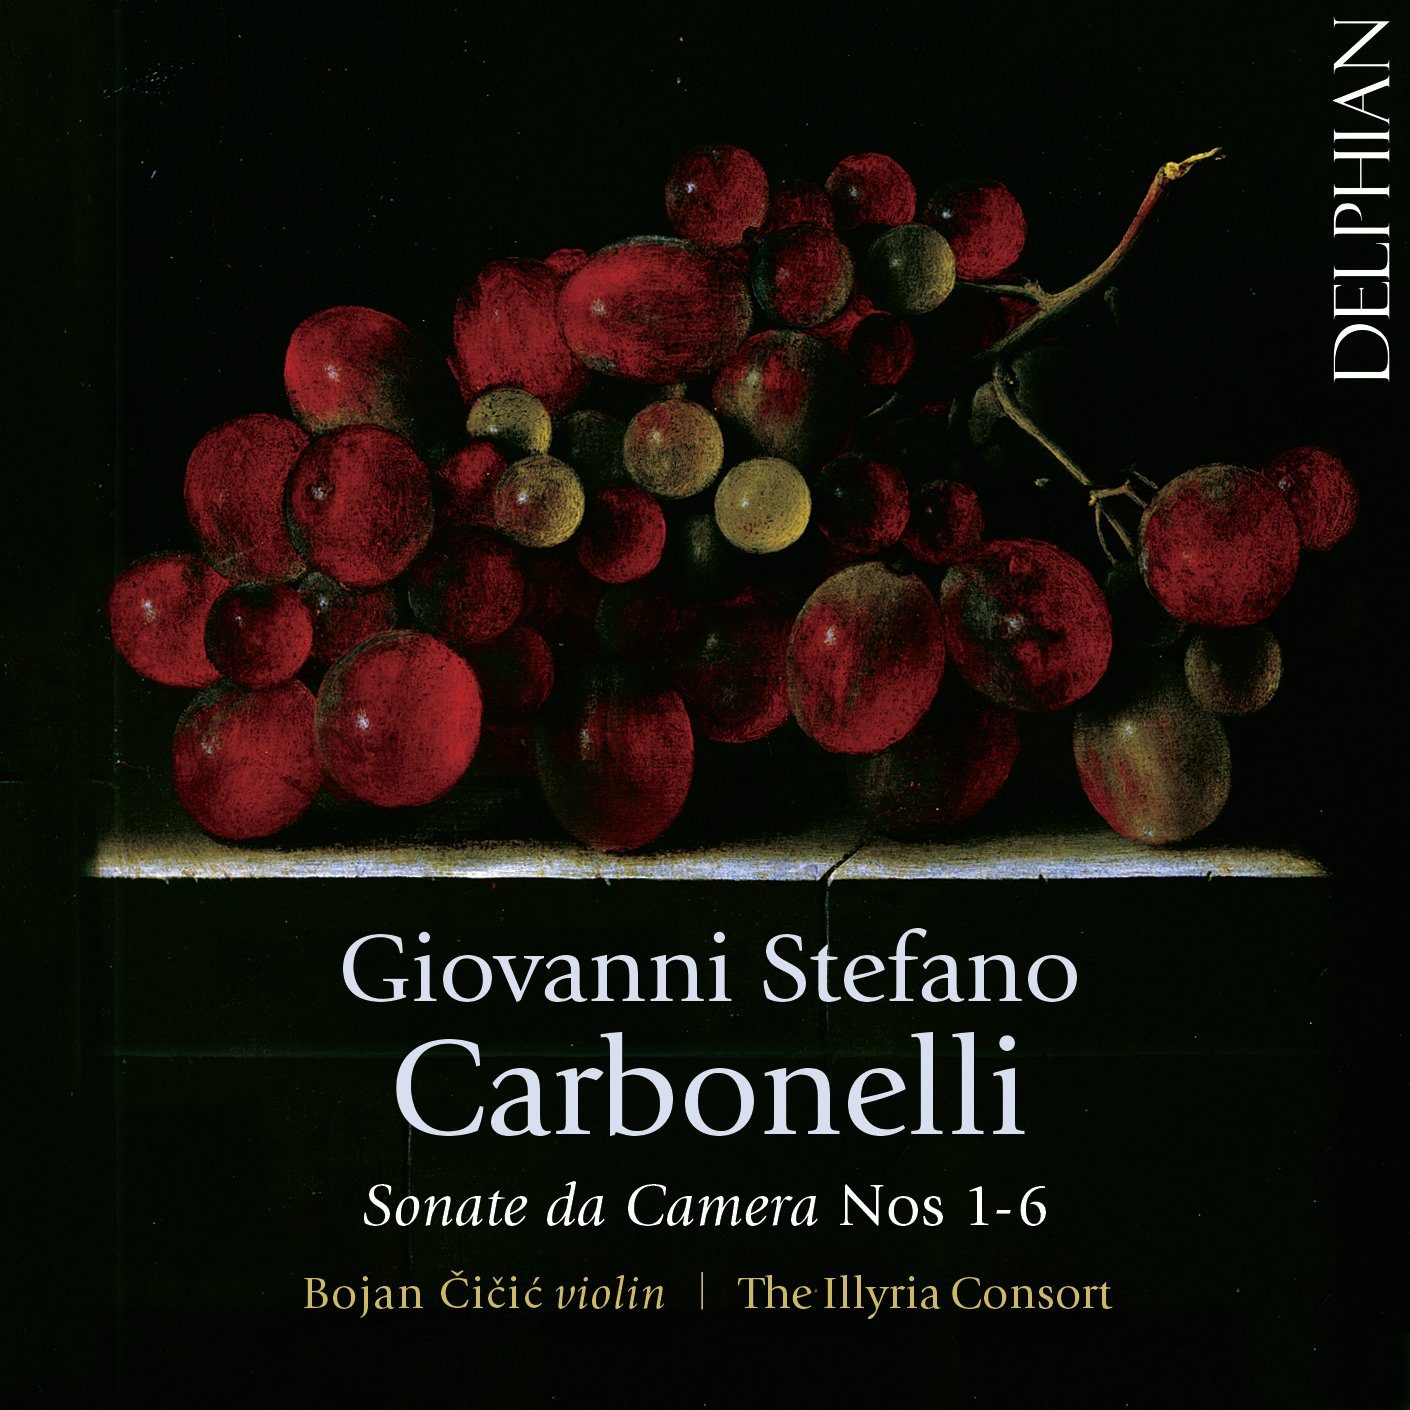 Giovanni Stefano Carbonelli: Sonate da Camera Nos 1–6 CD Delphian Records